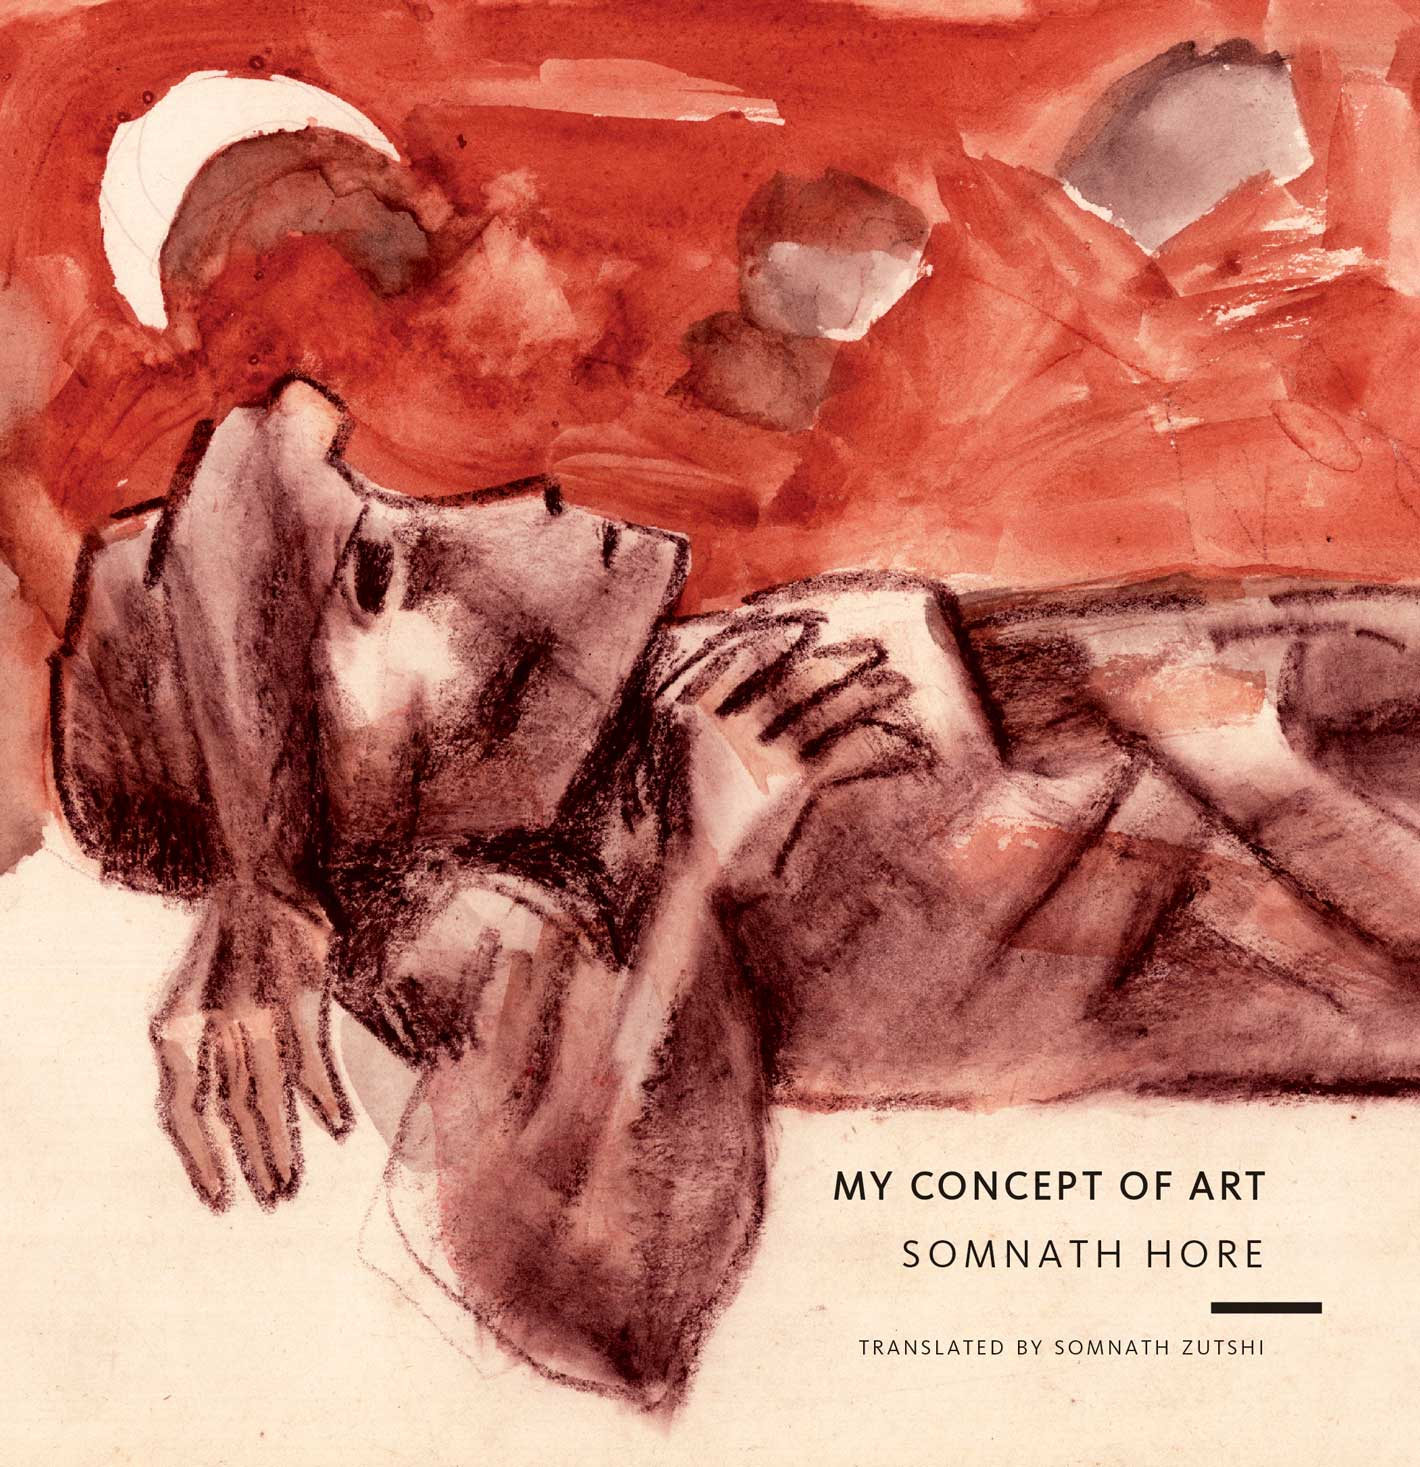 My Concept of Art by Somnath Hore | Seagull Books